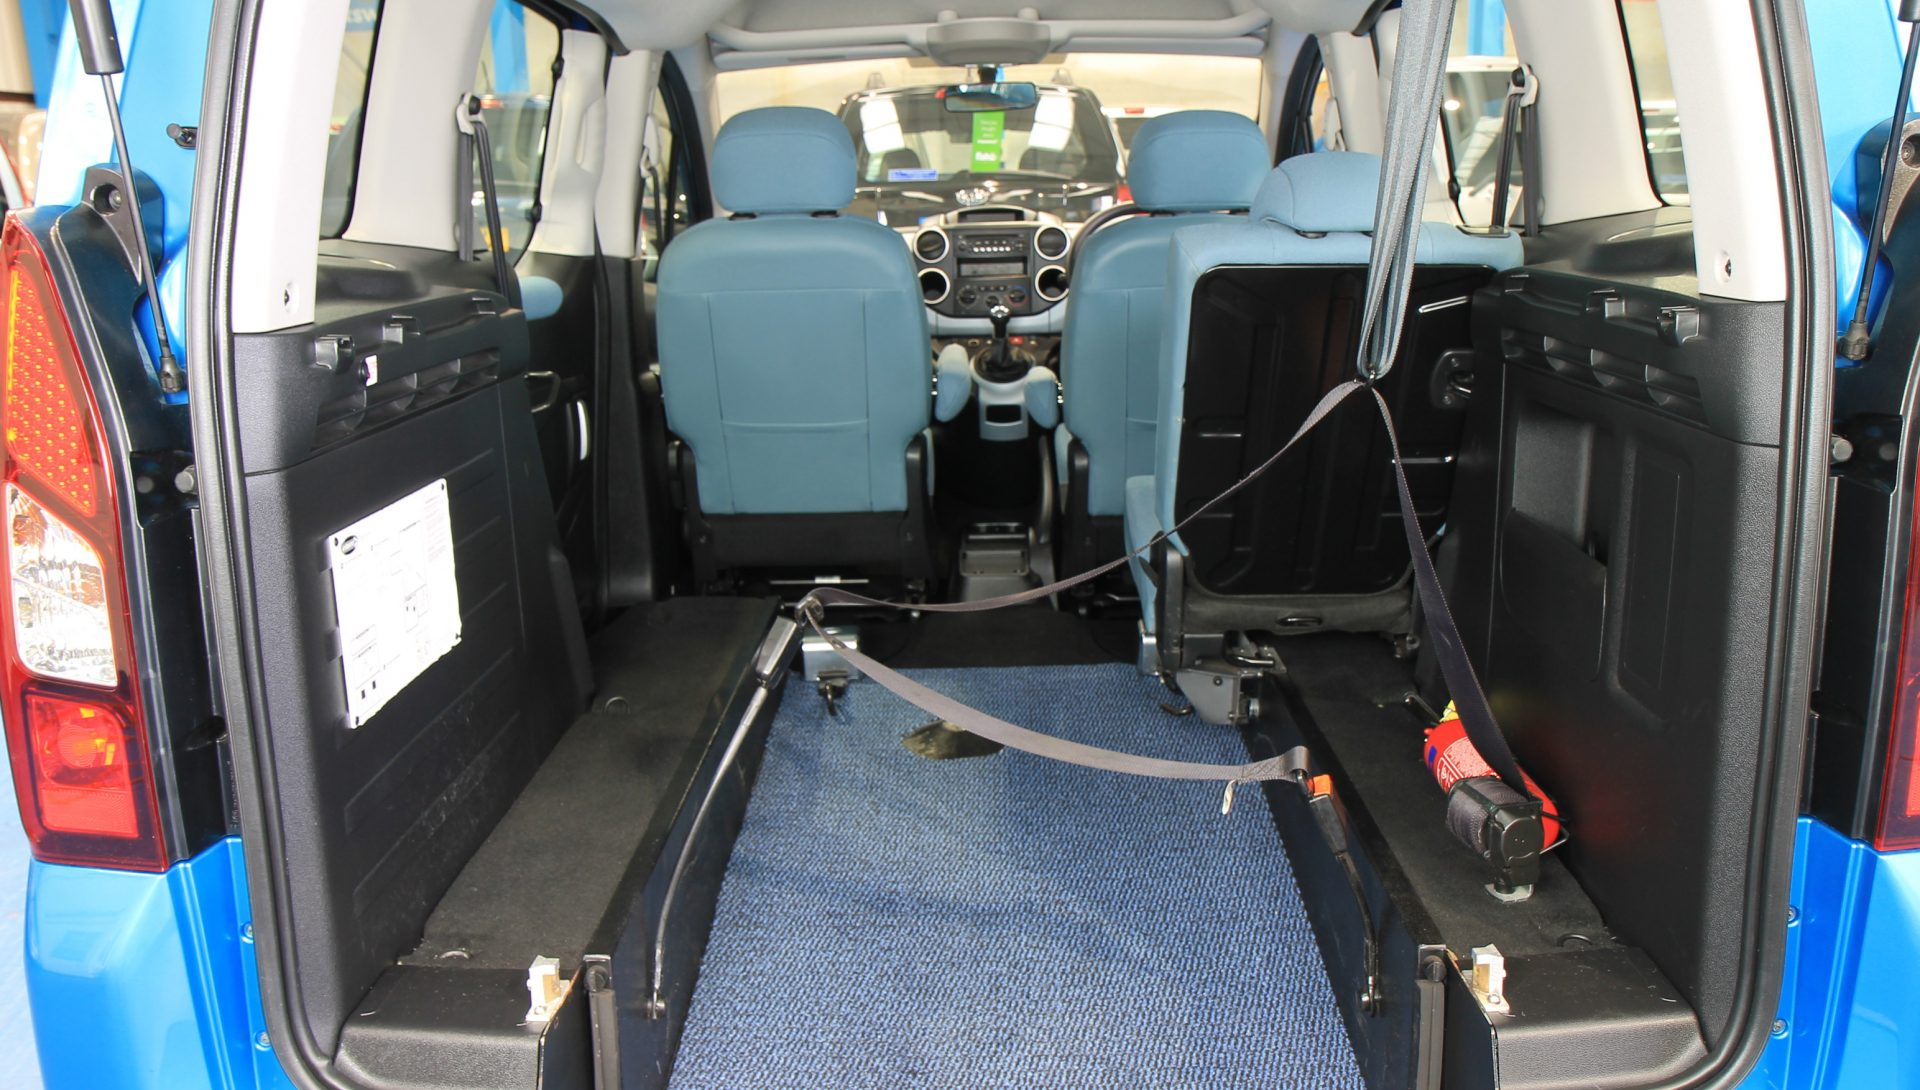 berlingo wheelchair access vehicle sn63jzn wheelchair accessible vehicles. Black Bedroom Furniture Sets. Home Design Ideas